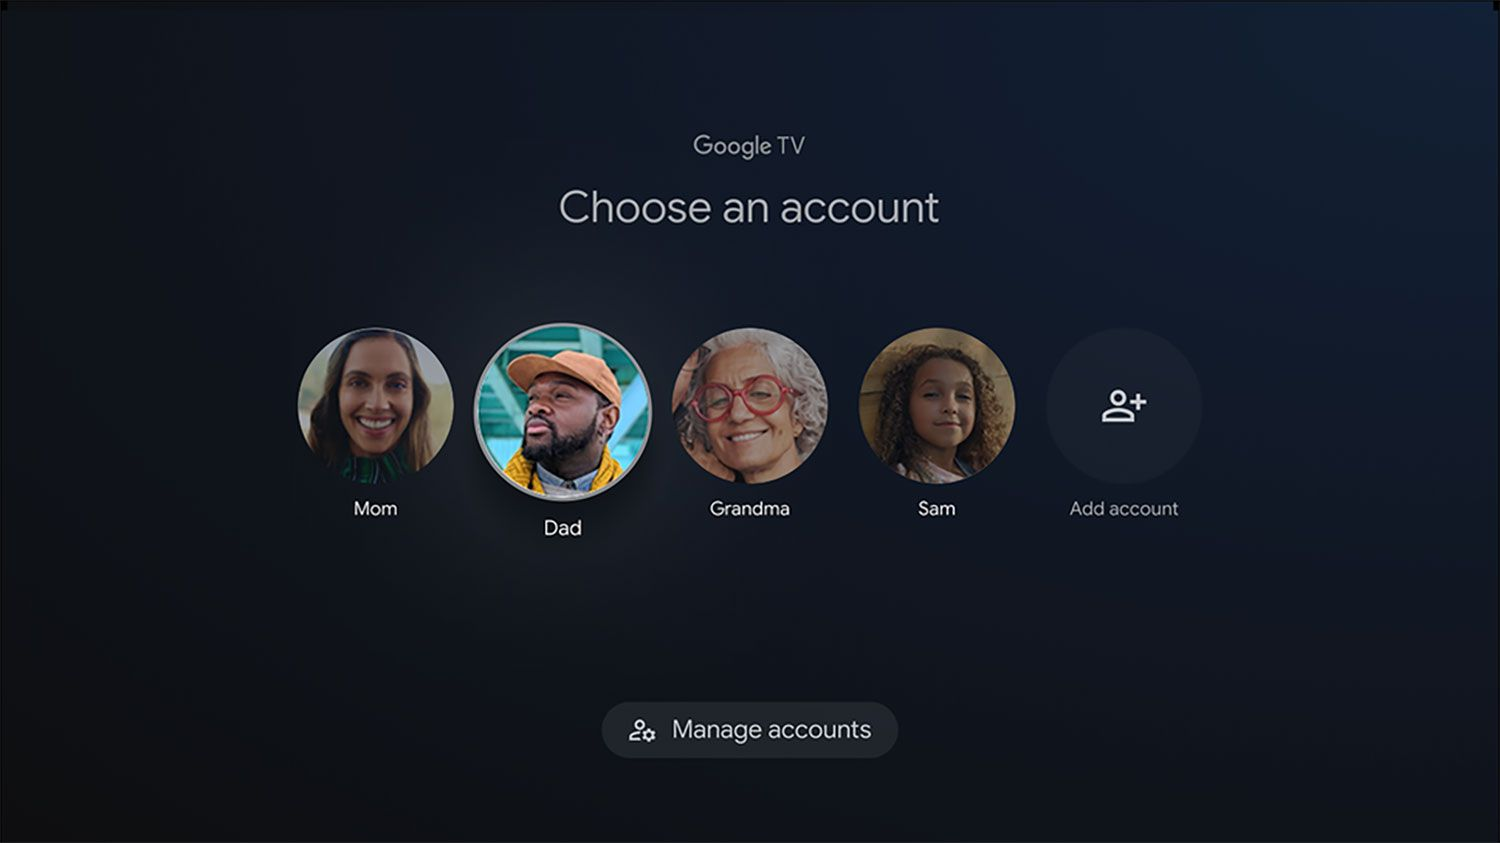 The account selection screen on Google TV